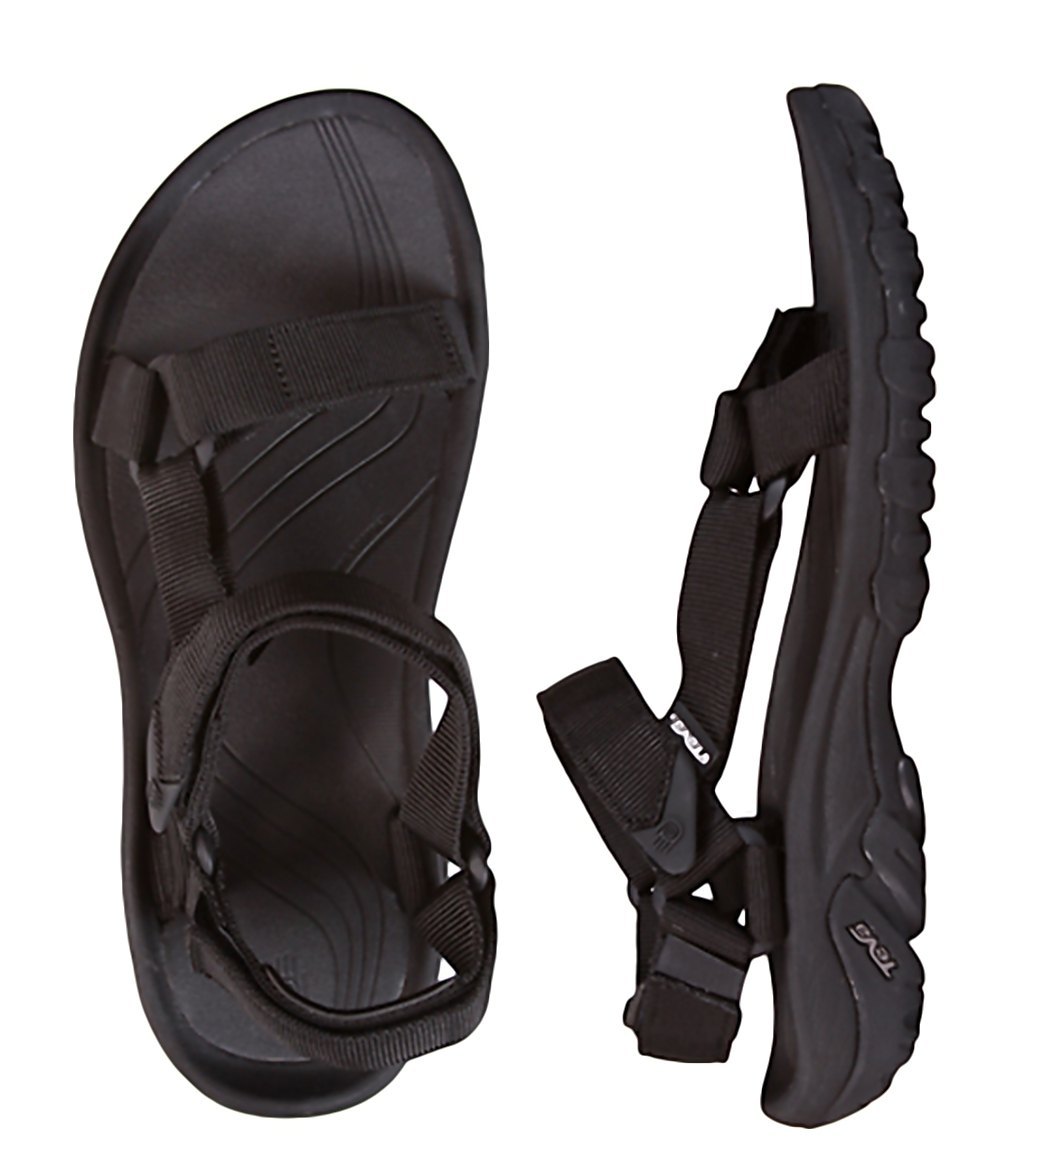 0df1307a4875 Teva Men s Hurricane XLT Sandal at SwimOutlet.com - Free Shipping